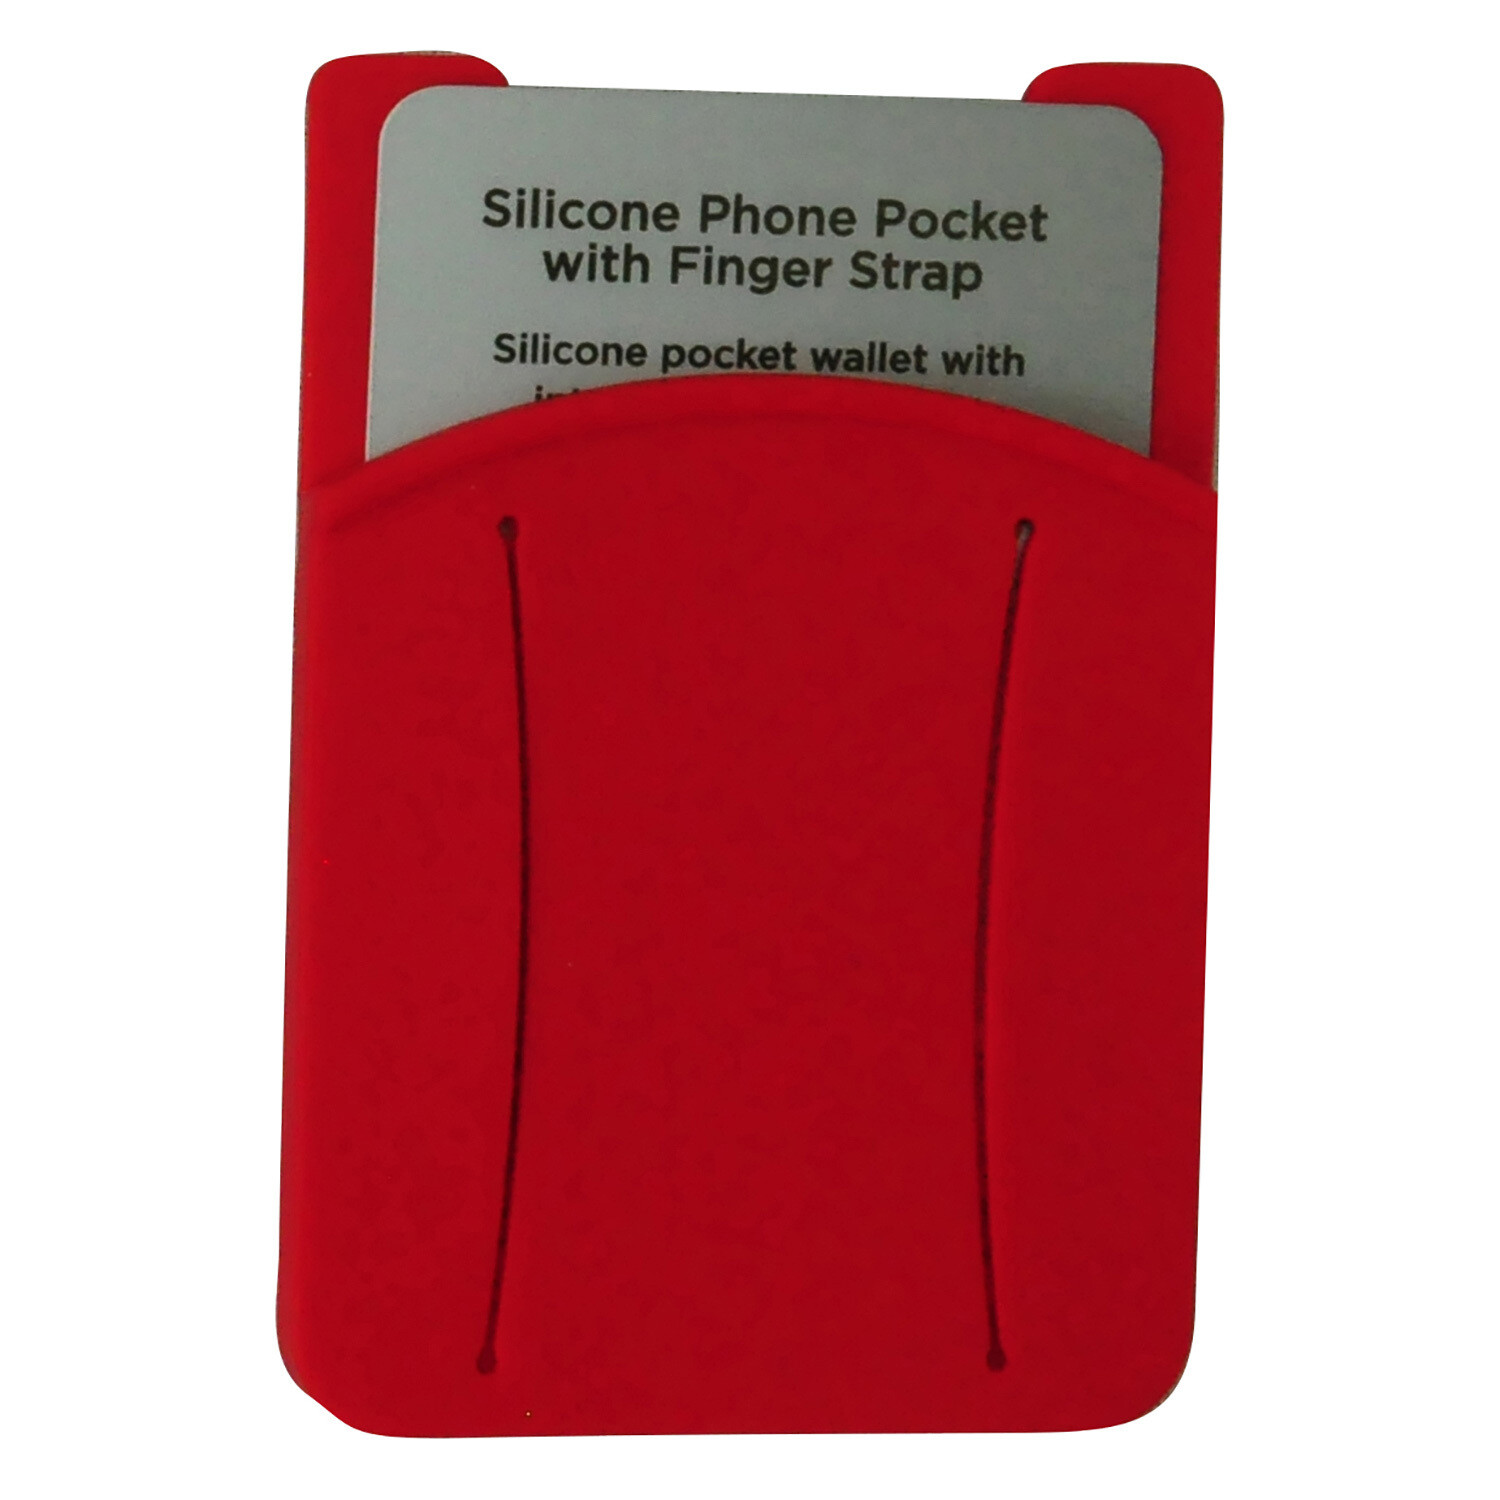 Silicone Phone Pocket With Finger Strap